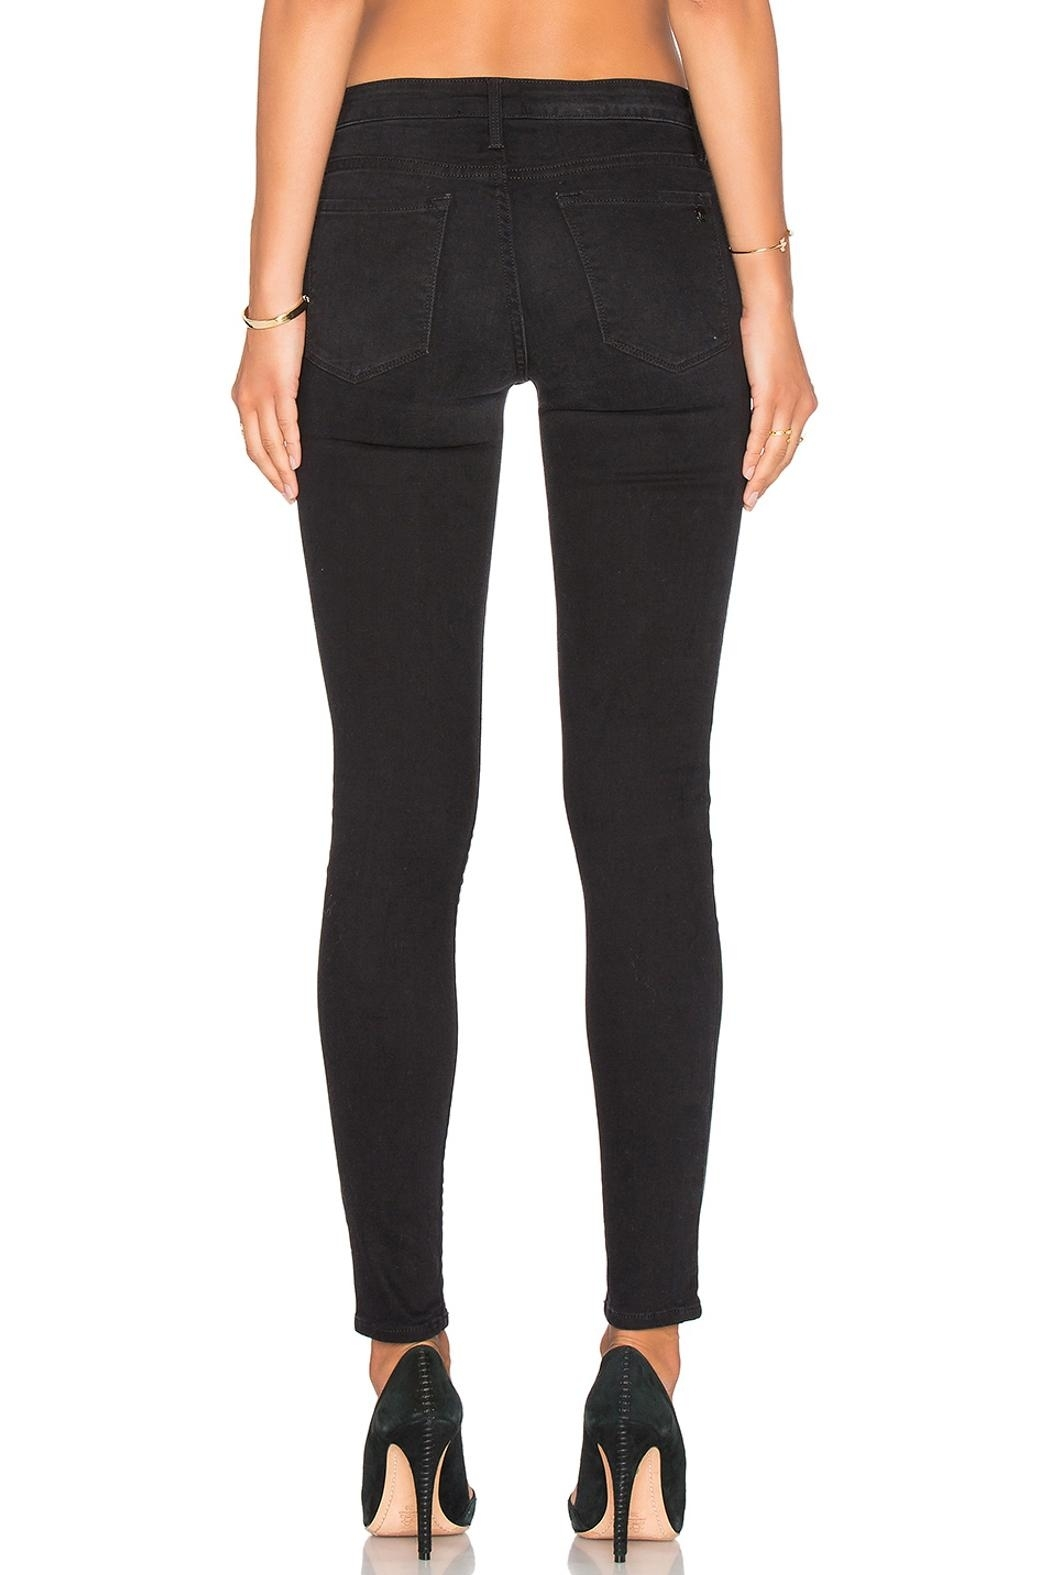 Black Orchid Denim Jude Mid Rise Super Skinny Denim - Side Cropped Image